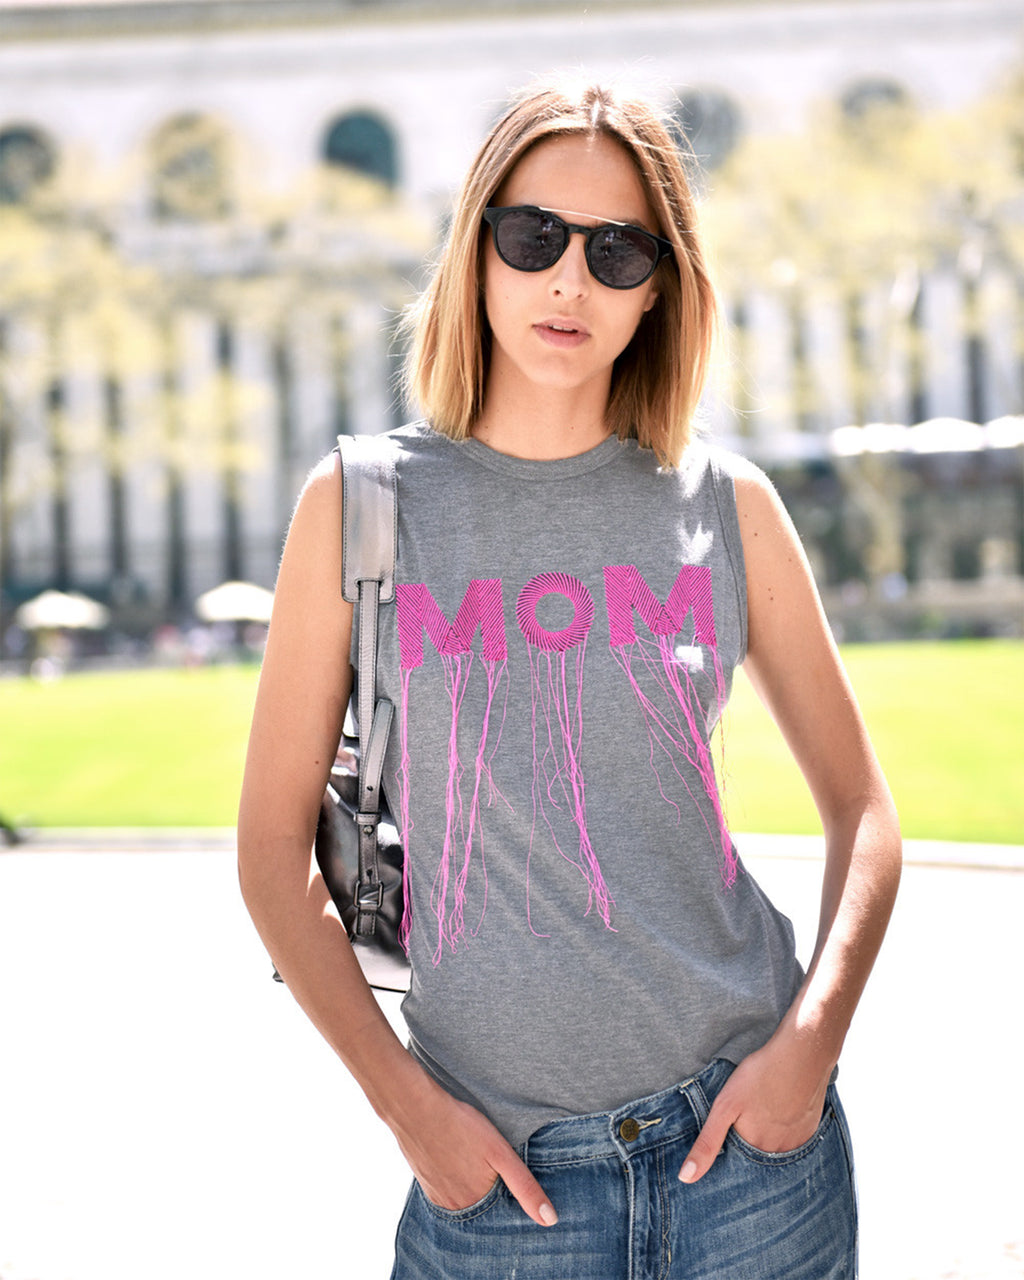 AM10046 - EMBROIDERED MOM TANK - tops - shirts - Soft and light, this silk top is the perfect summer staple. The delicate pleats and sleeveless silhouette makes this flowy top a favorite. Pair with jeans and sneakers for a simple and chic look. Fully lined. Final Sale